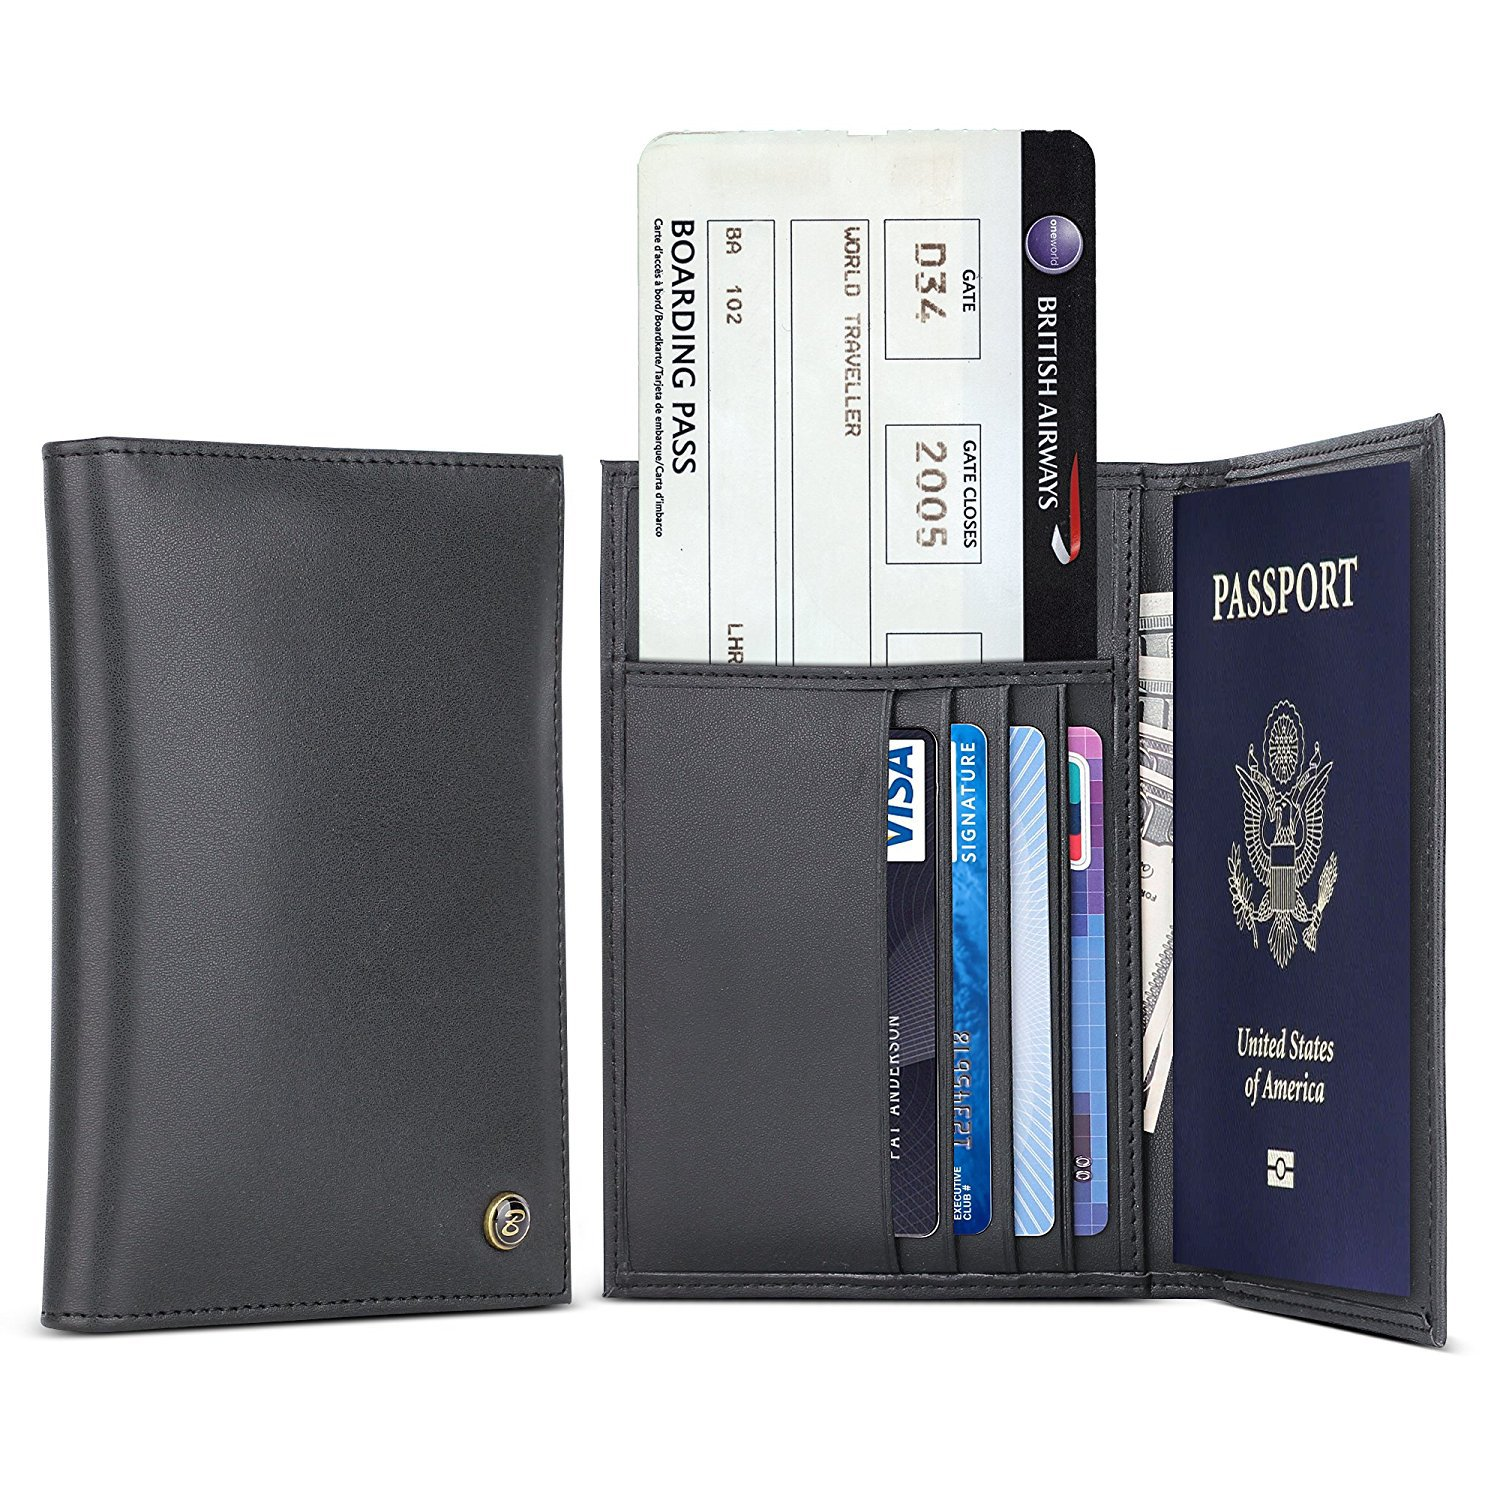 Genuine Leather Passport Holder - B BELK RFID Blocking Travel Wallet Cover Case For Men & Women,Protect Your Passport,Airline Ticket, Credit ...